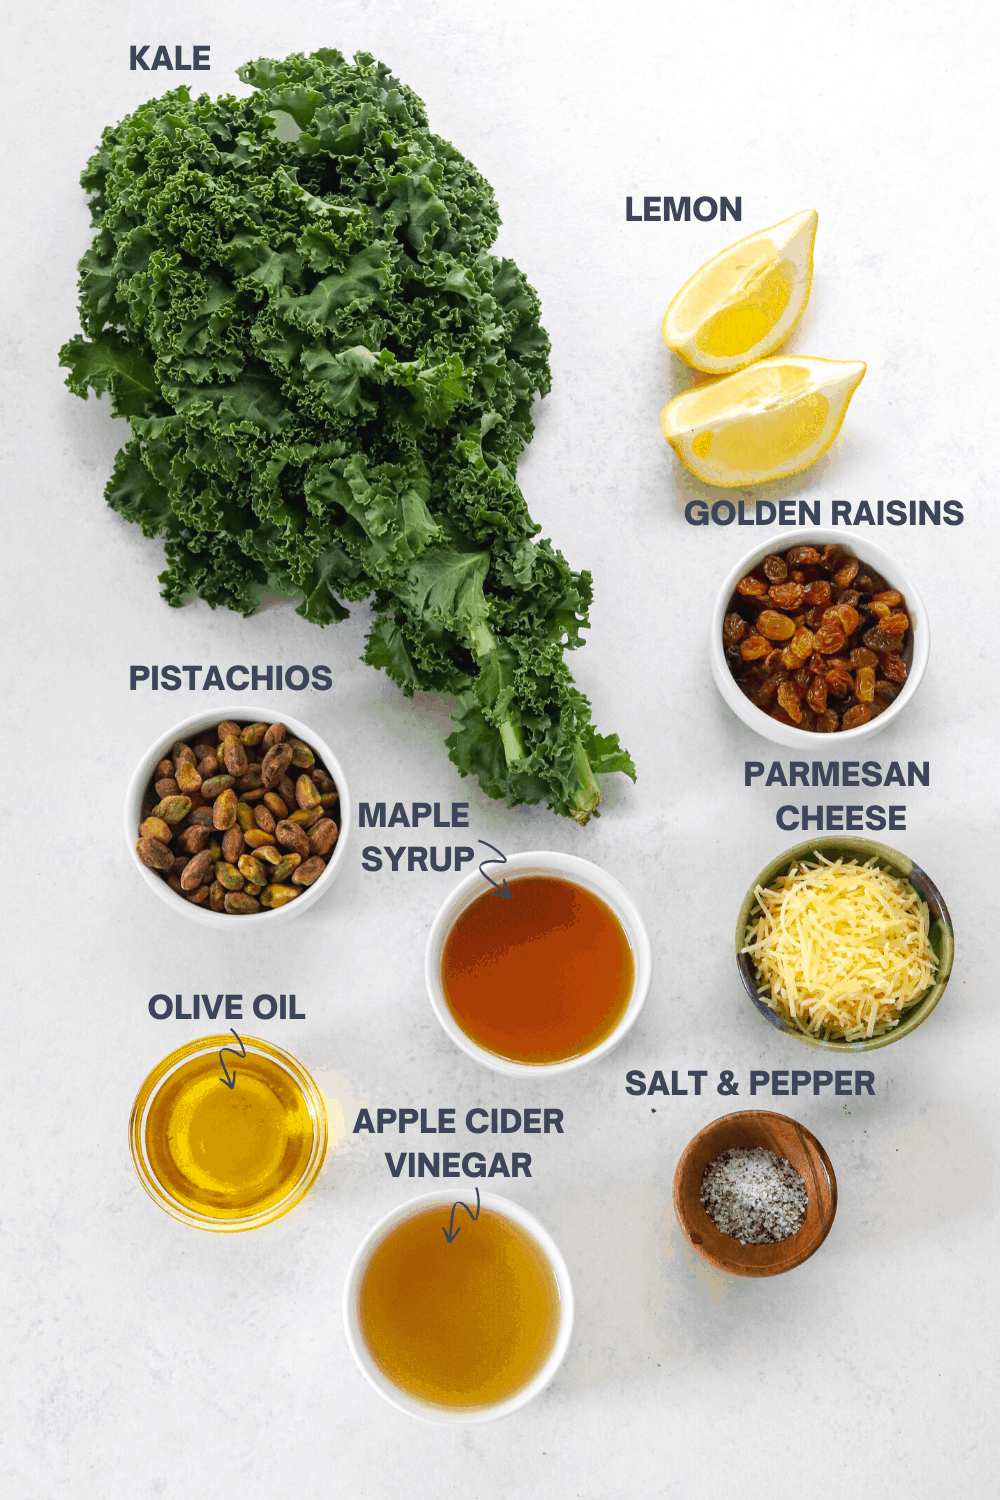 Bunch of kale, sliced lemons, bowl of shelled pistachios, golden raisins, parmesan cheese, olive oil, vinegar and maple syrup on a white surface with labels for each ingredients